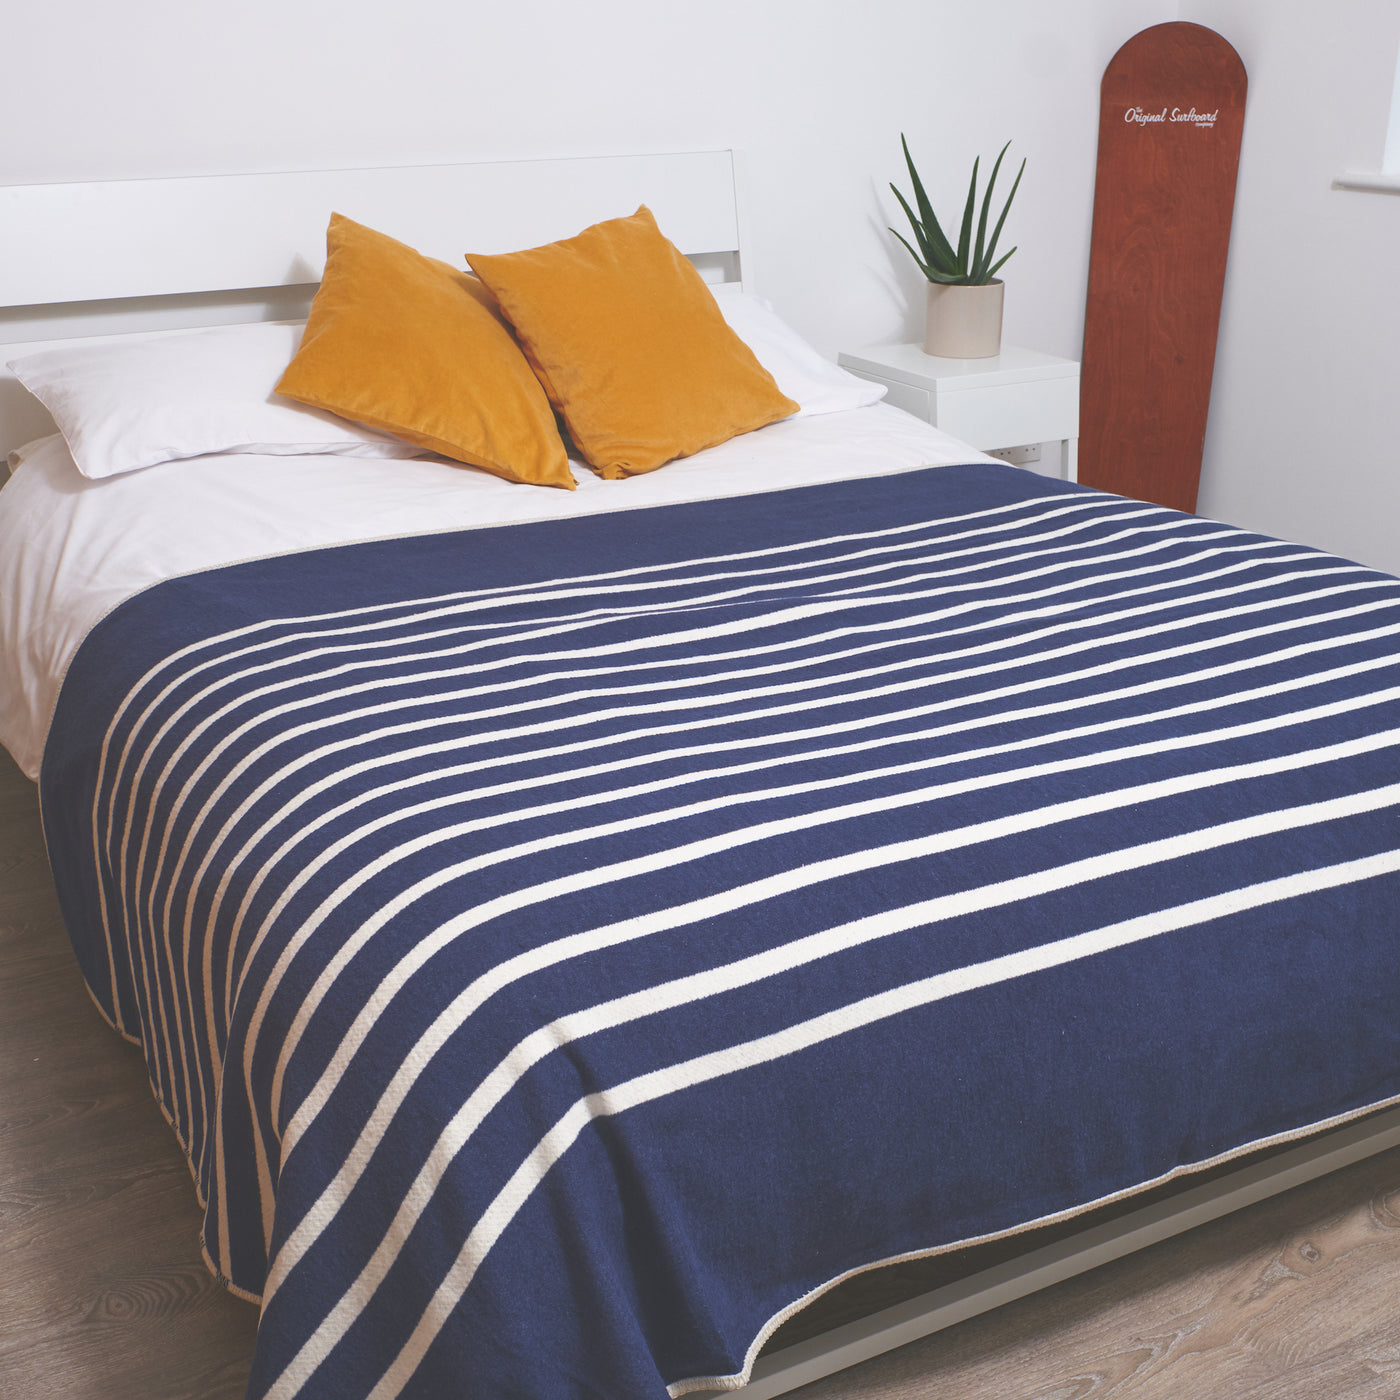 king sized bed blanket in a navy and cream stripe design